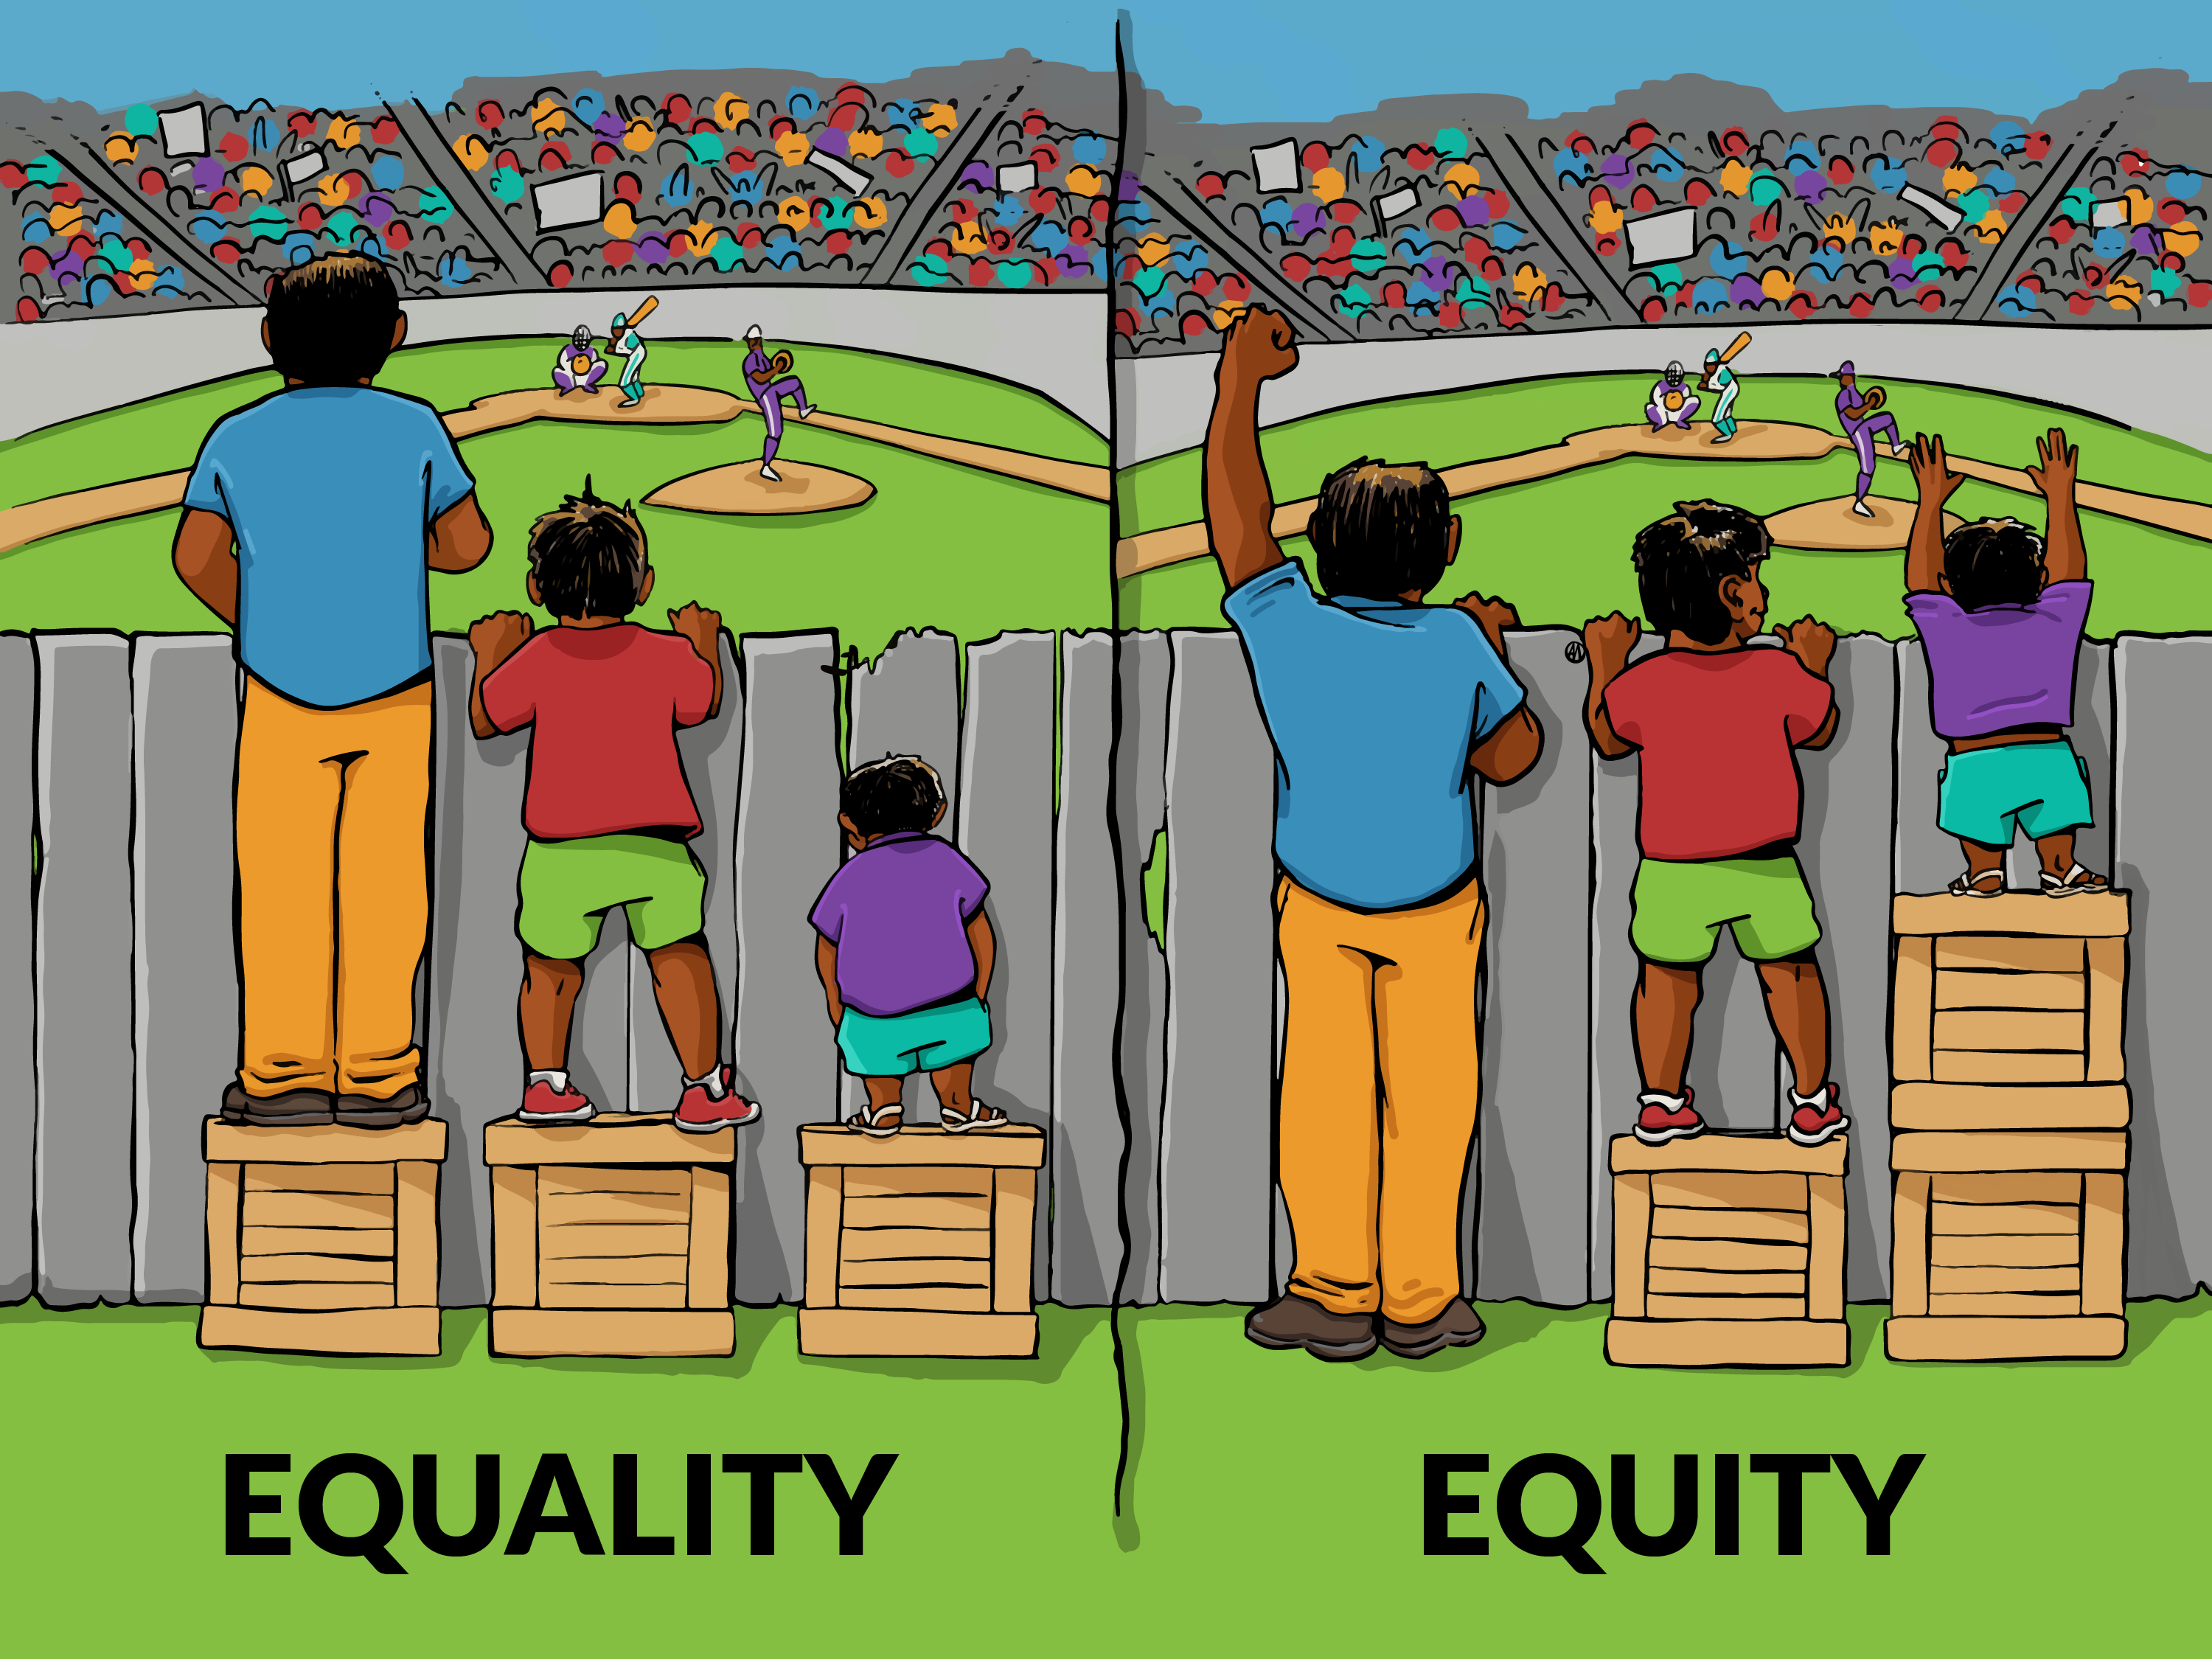 people of various heights standing on same size boxes vs boxes that bring them all to the same height illustrating the difference between equality and equity